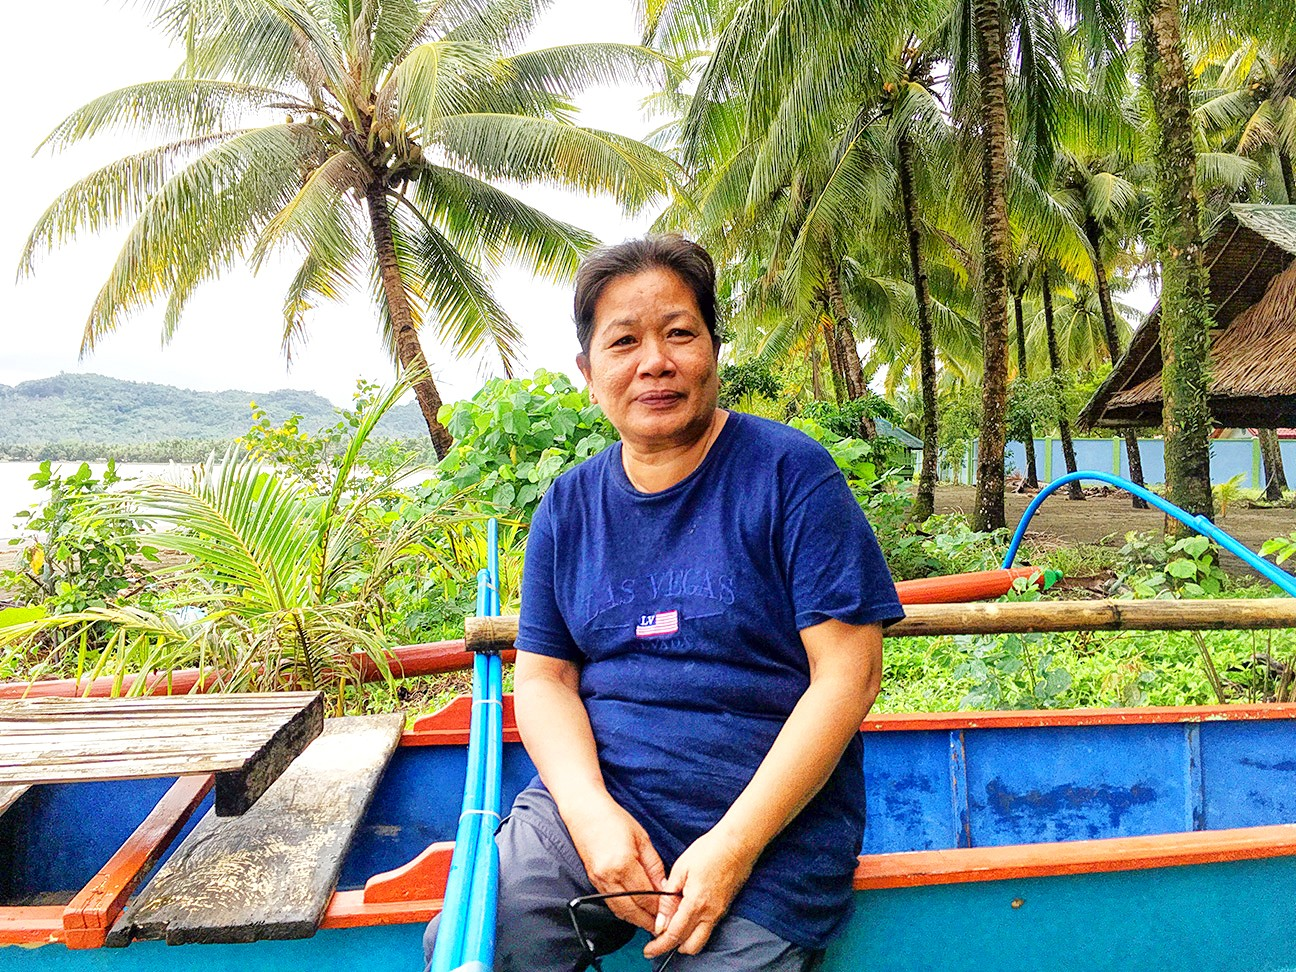 Successful business ventures of Bon-ot fisherfolks and vendors